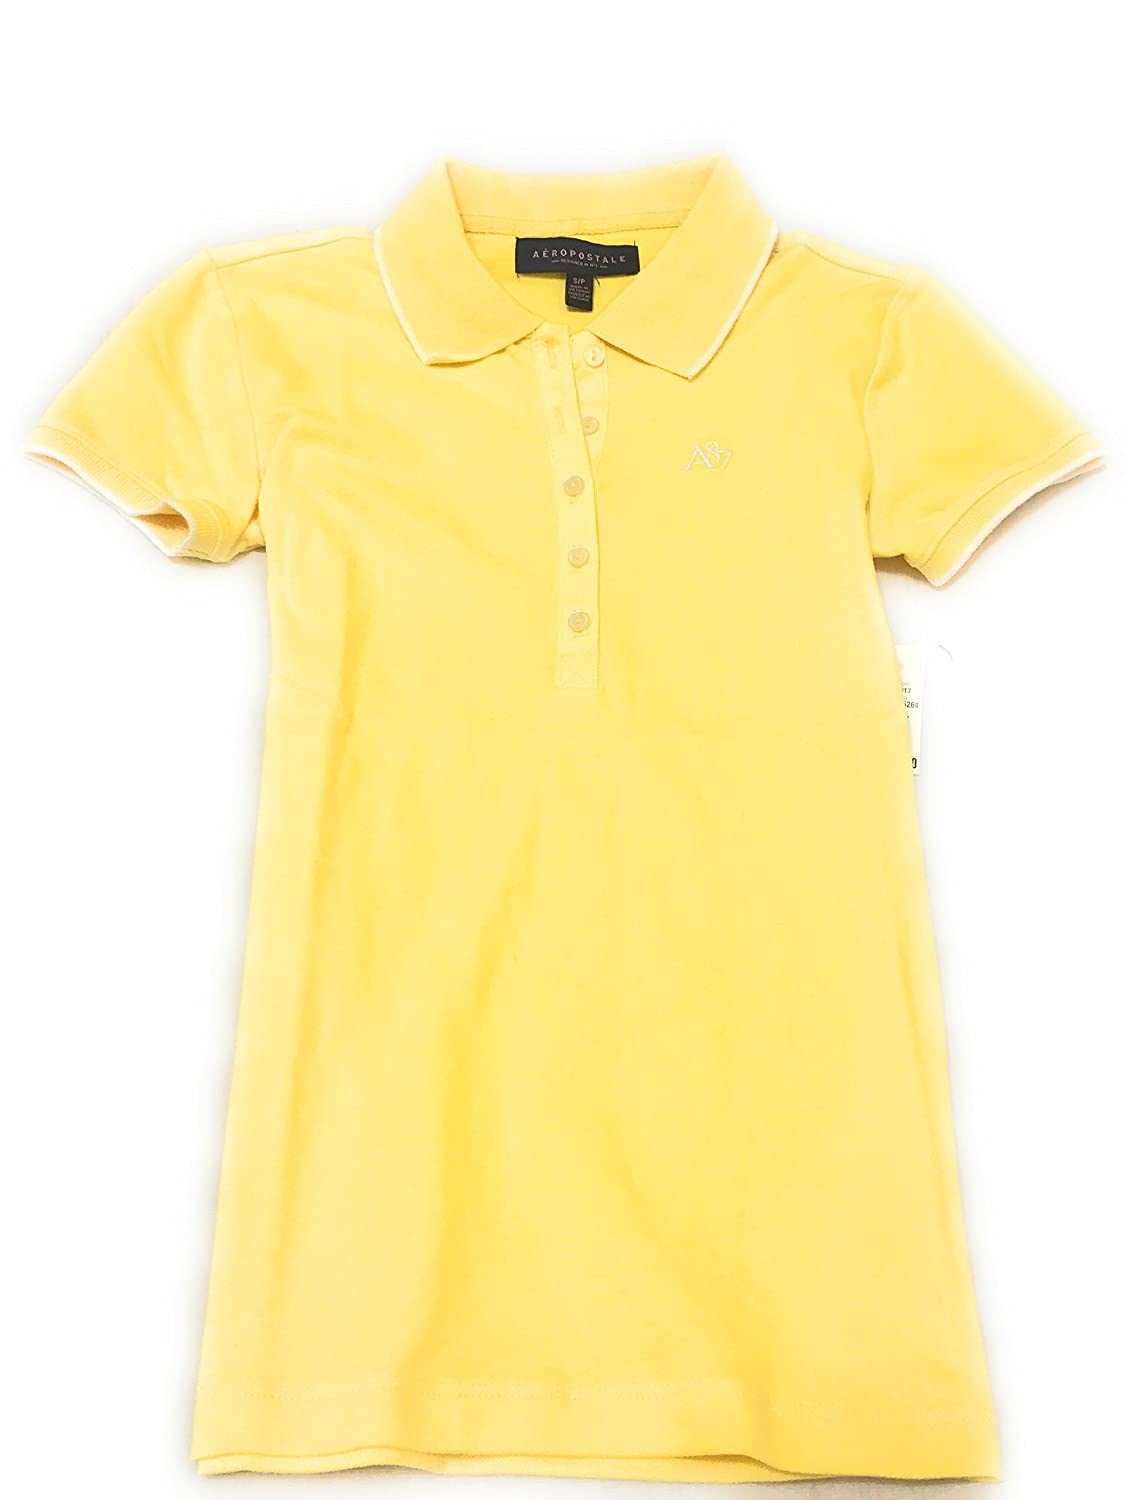 Aeropostale Women's Line Tipped Polo Shirt With A87 Logo Style 9412